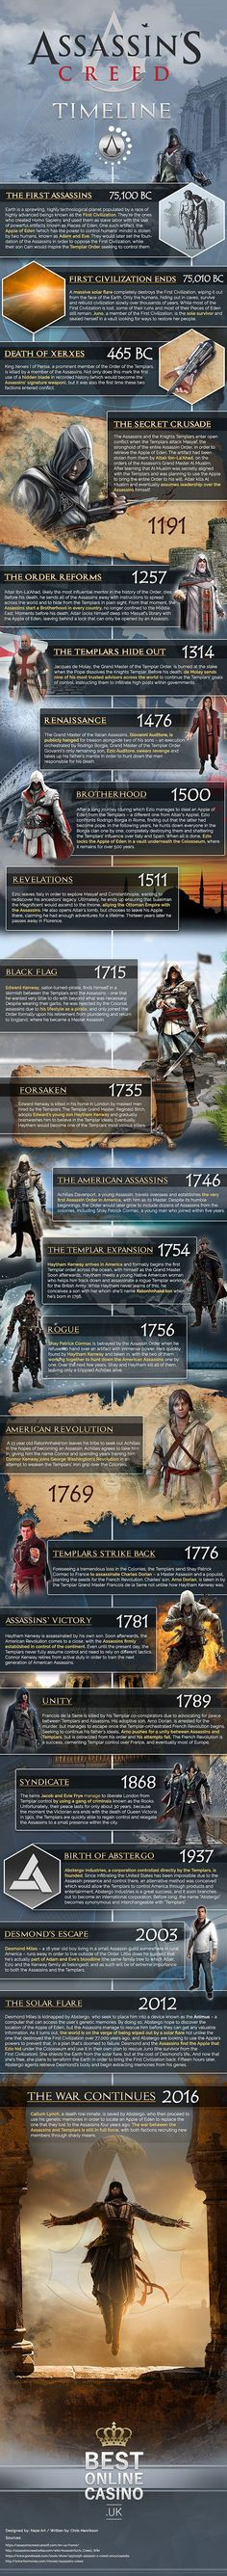 Complete Assassin's Creed timeline So far (source in comments) Assassins Creed Quotes, Assassins Creed Odyssey, Assassins Creed Cosplay, Assassins Creed Origins, Asesins Creed, All Assassin's Creed, Life Is Strange, Assassin's Creed History, Connor Kenway